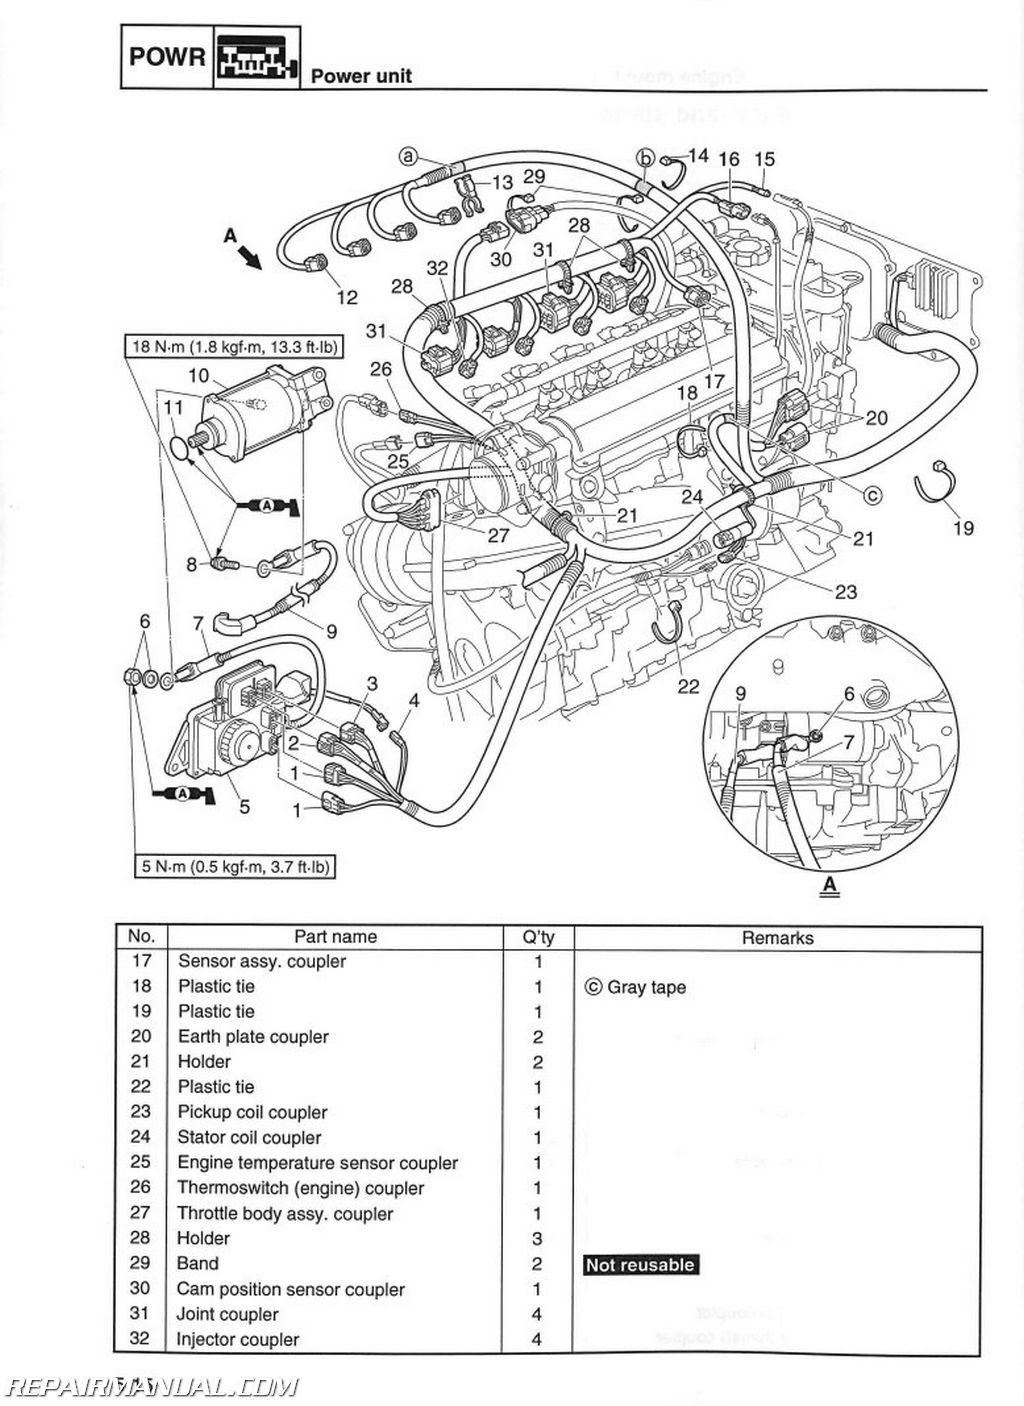 hight resolution of waverunner engine diagram wiring diagram details waverunner engine diagram waverunner engine diagram